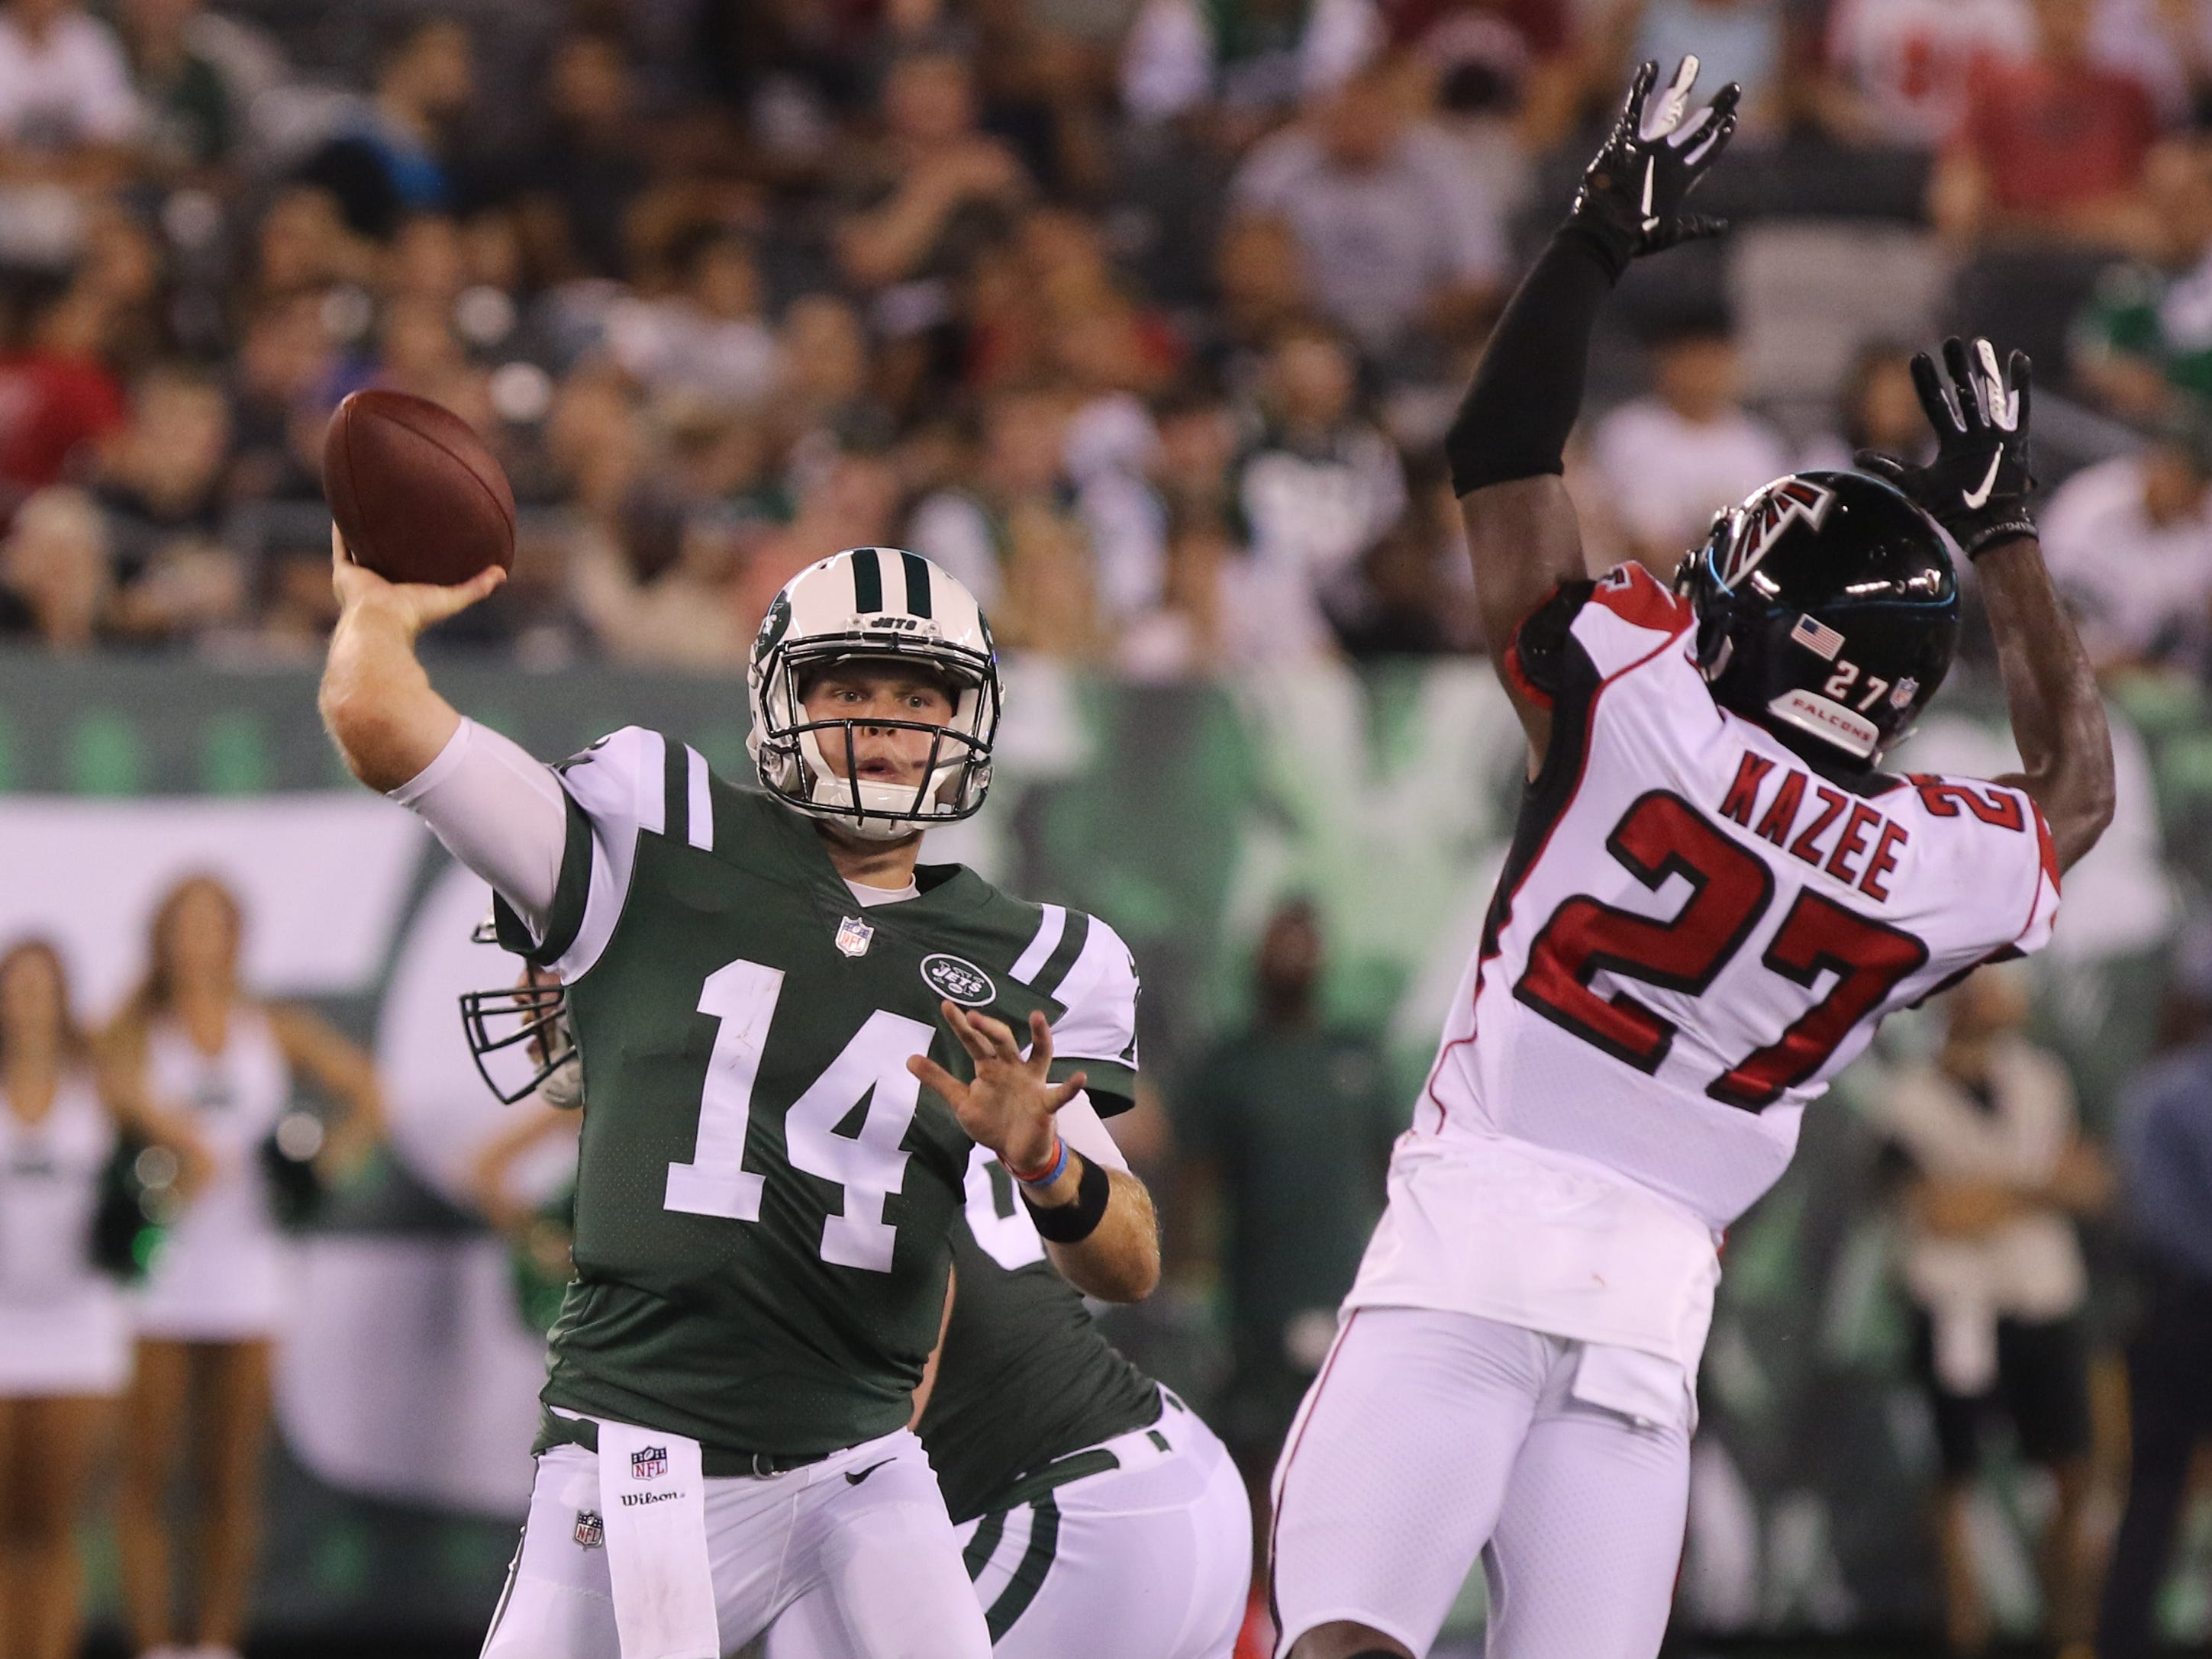 Jets quarterback Sam Darnold stands tall as he gets the ball past Damontae Kazee of the Falcons during preseason action at MetLife Stadium, East Rutherford, on Friday, Aug. 10, 2018.